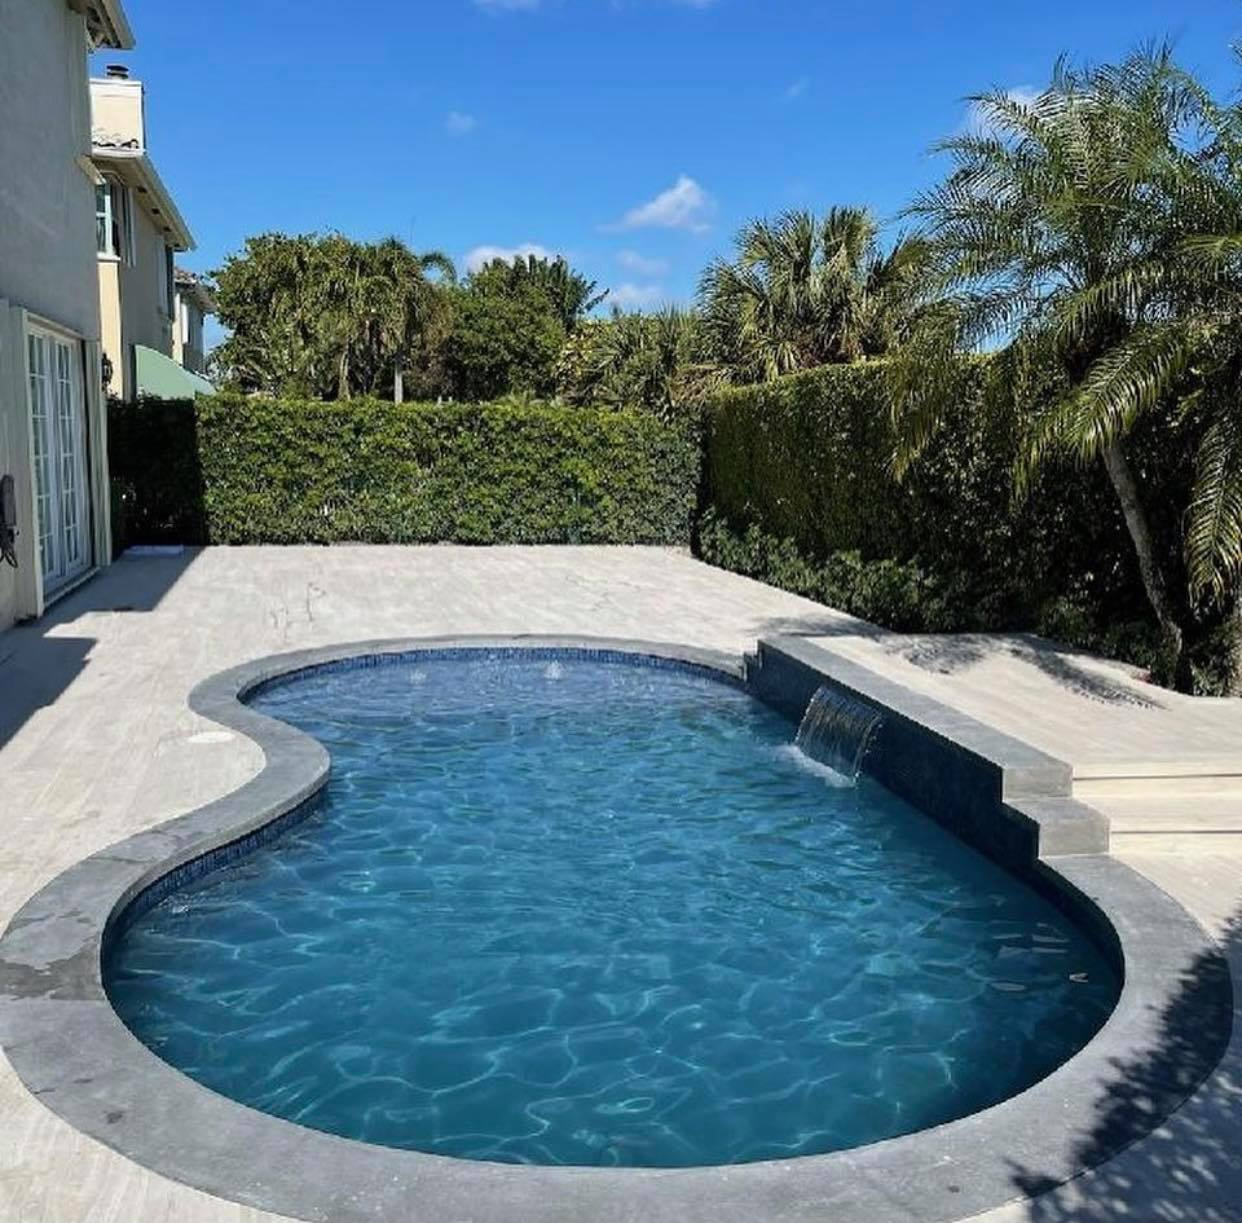 Pool Coping (Boca Raton, FL)